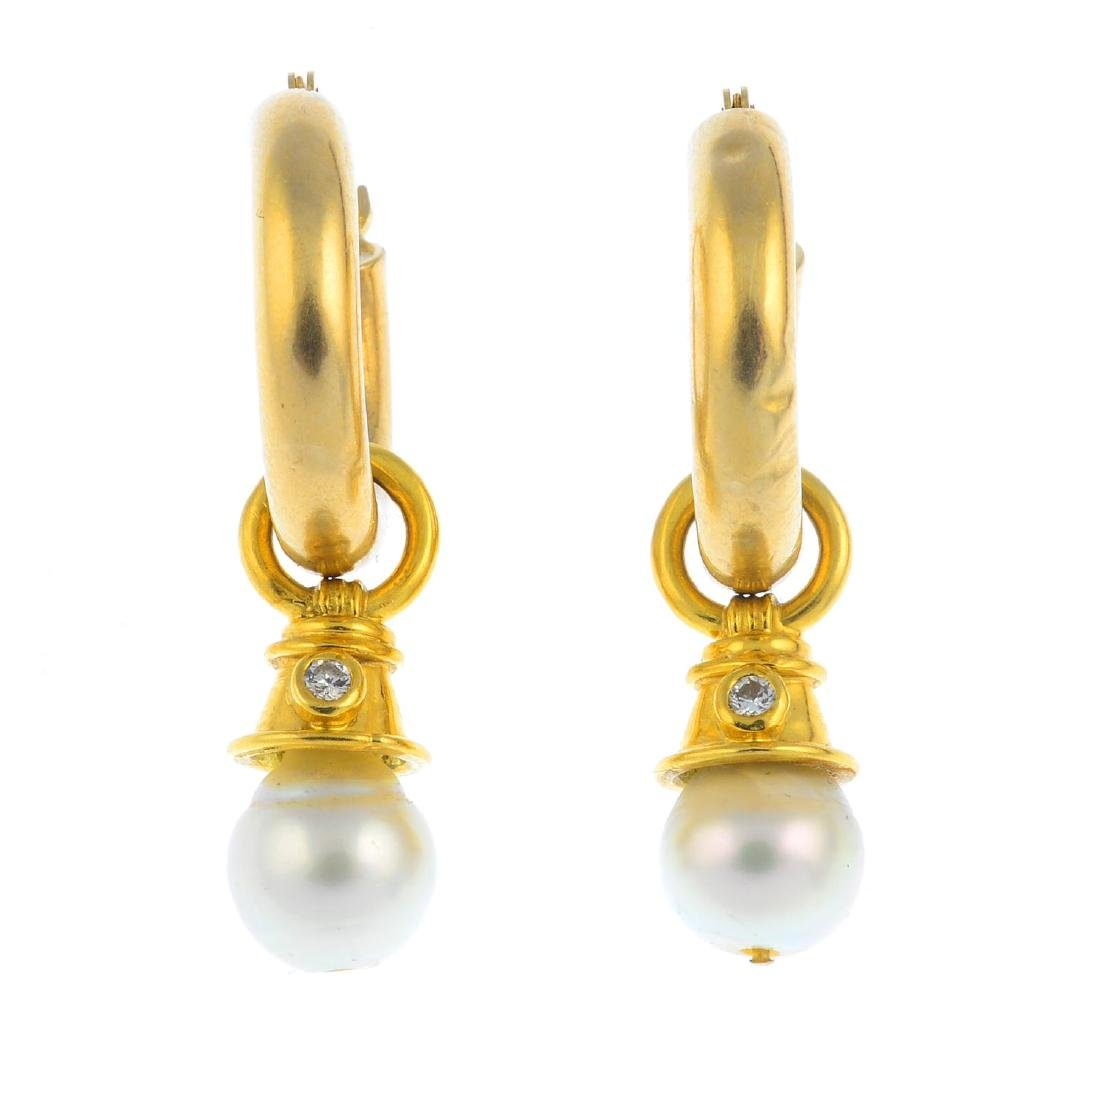 A pair of cultured pearl and diamond earrings. Each